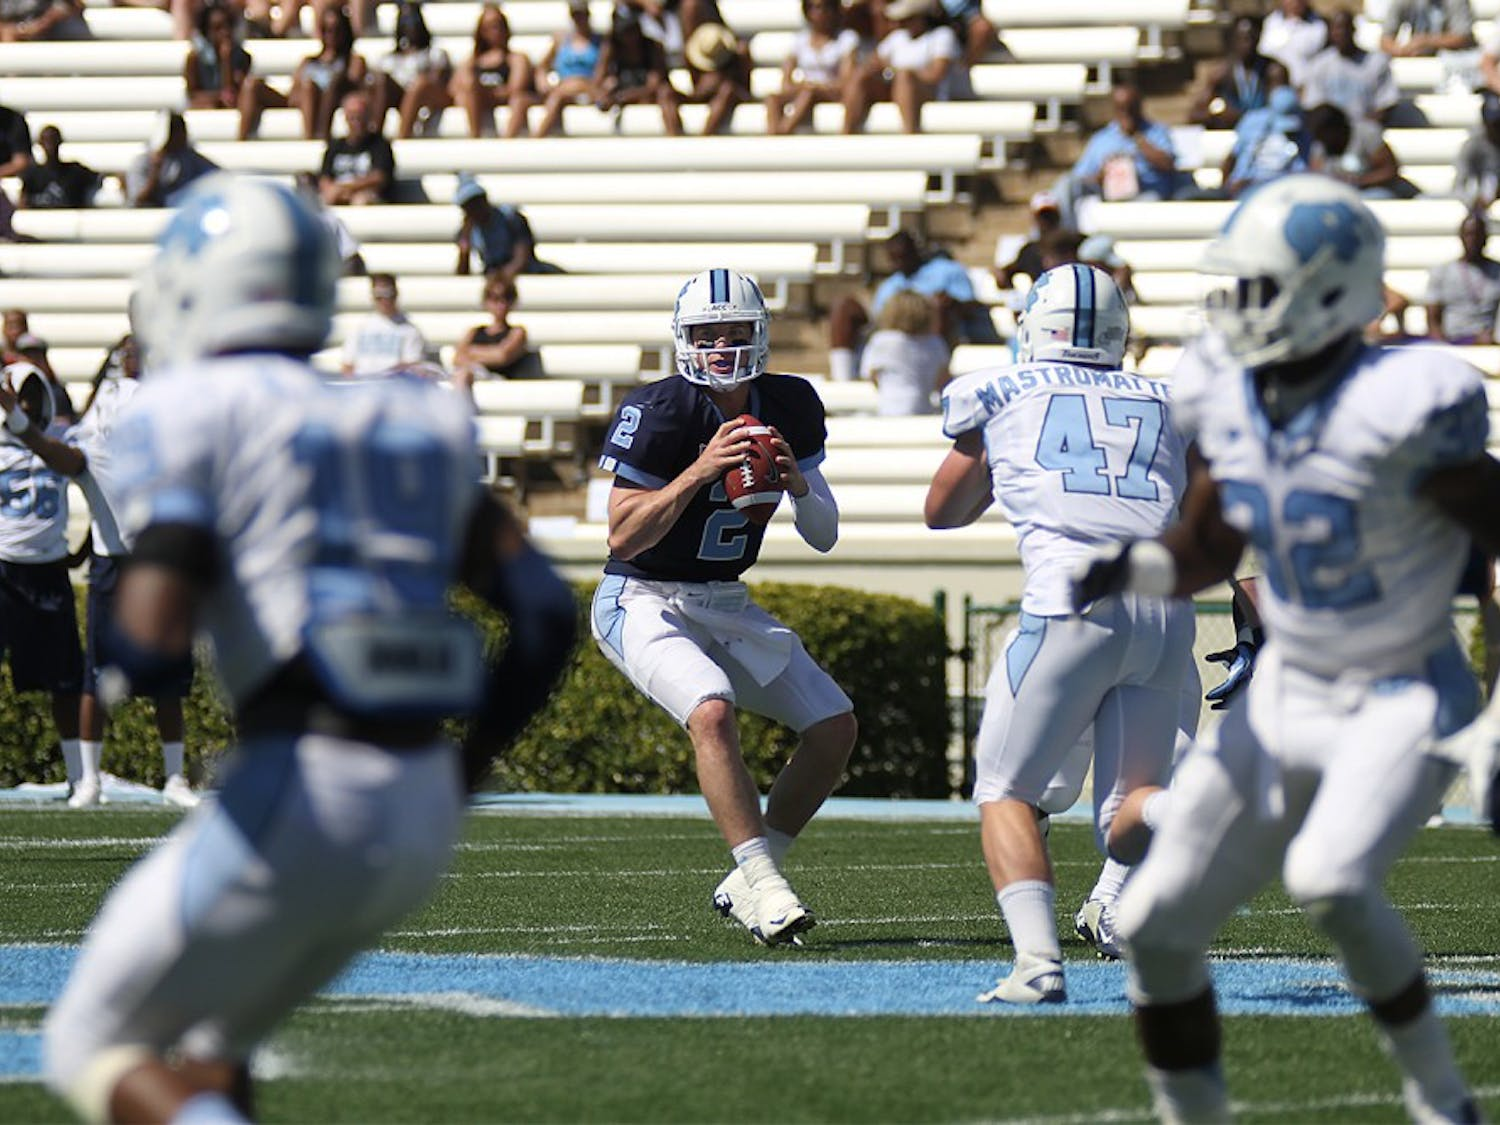 UNC Spring football game on April 13, 2013.